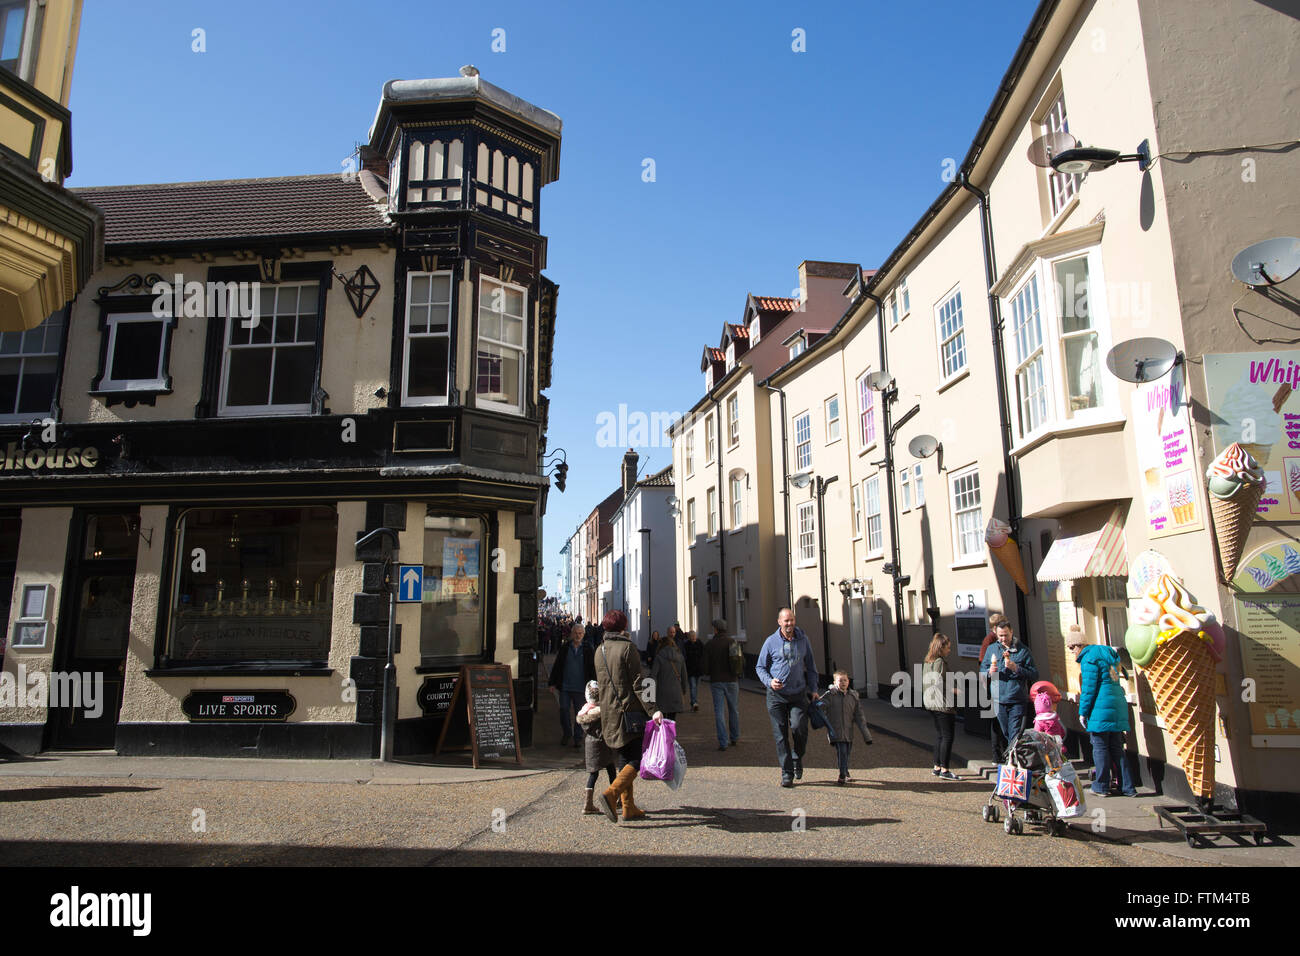 Old fishing town of Cromer, Norfolk coastal town, East Anglia, England, United Kingdom - Stock Image